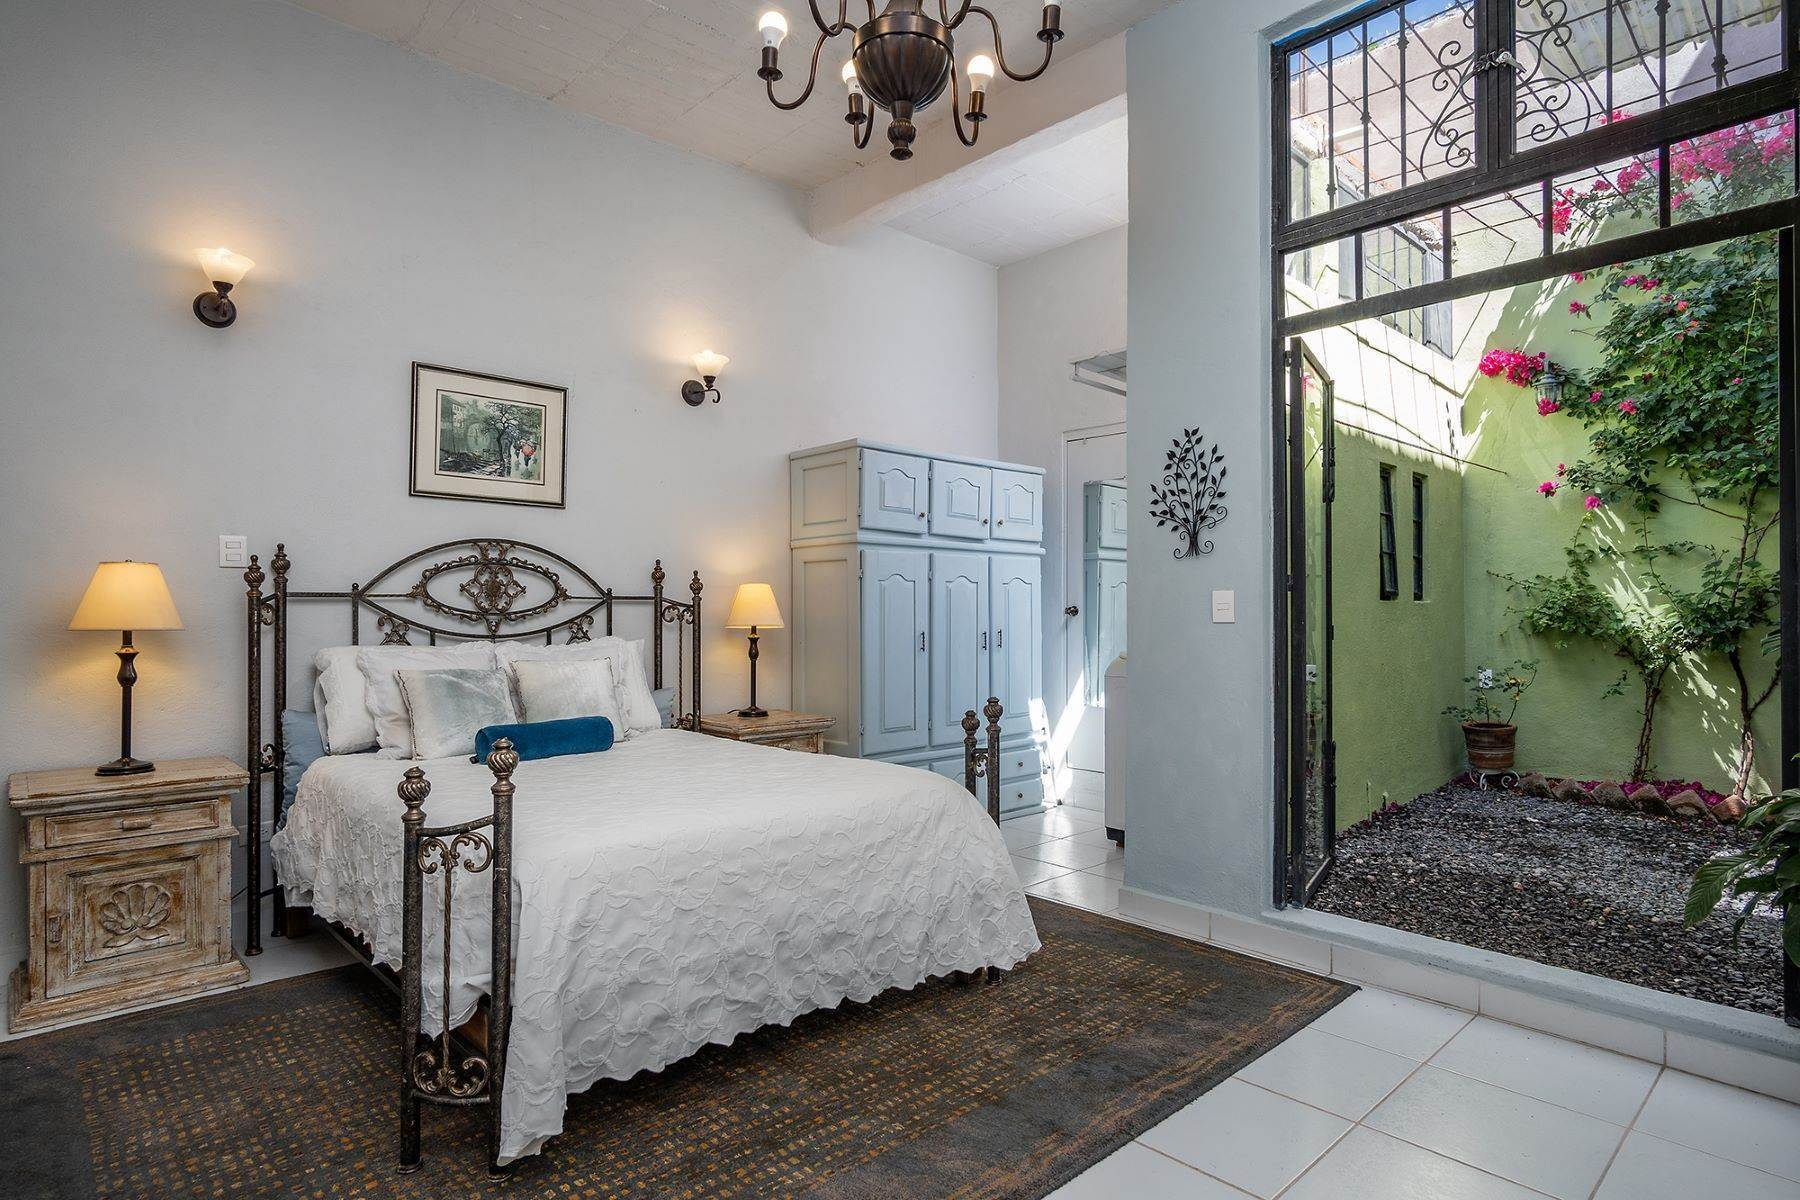 Property for Sale at Casa Linda Fray Pedro de Gante San Miguel De Allende, Guanajuato 37732 Mexico